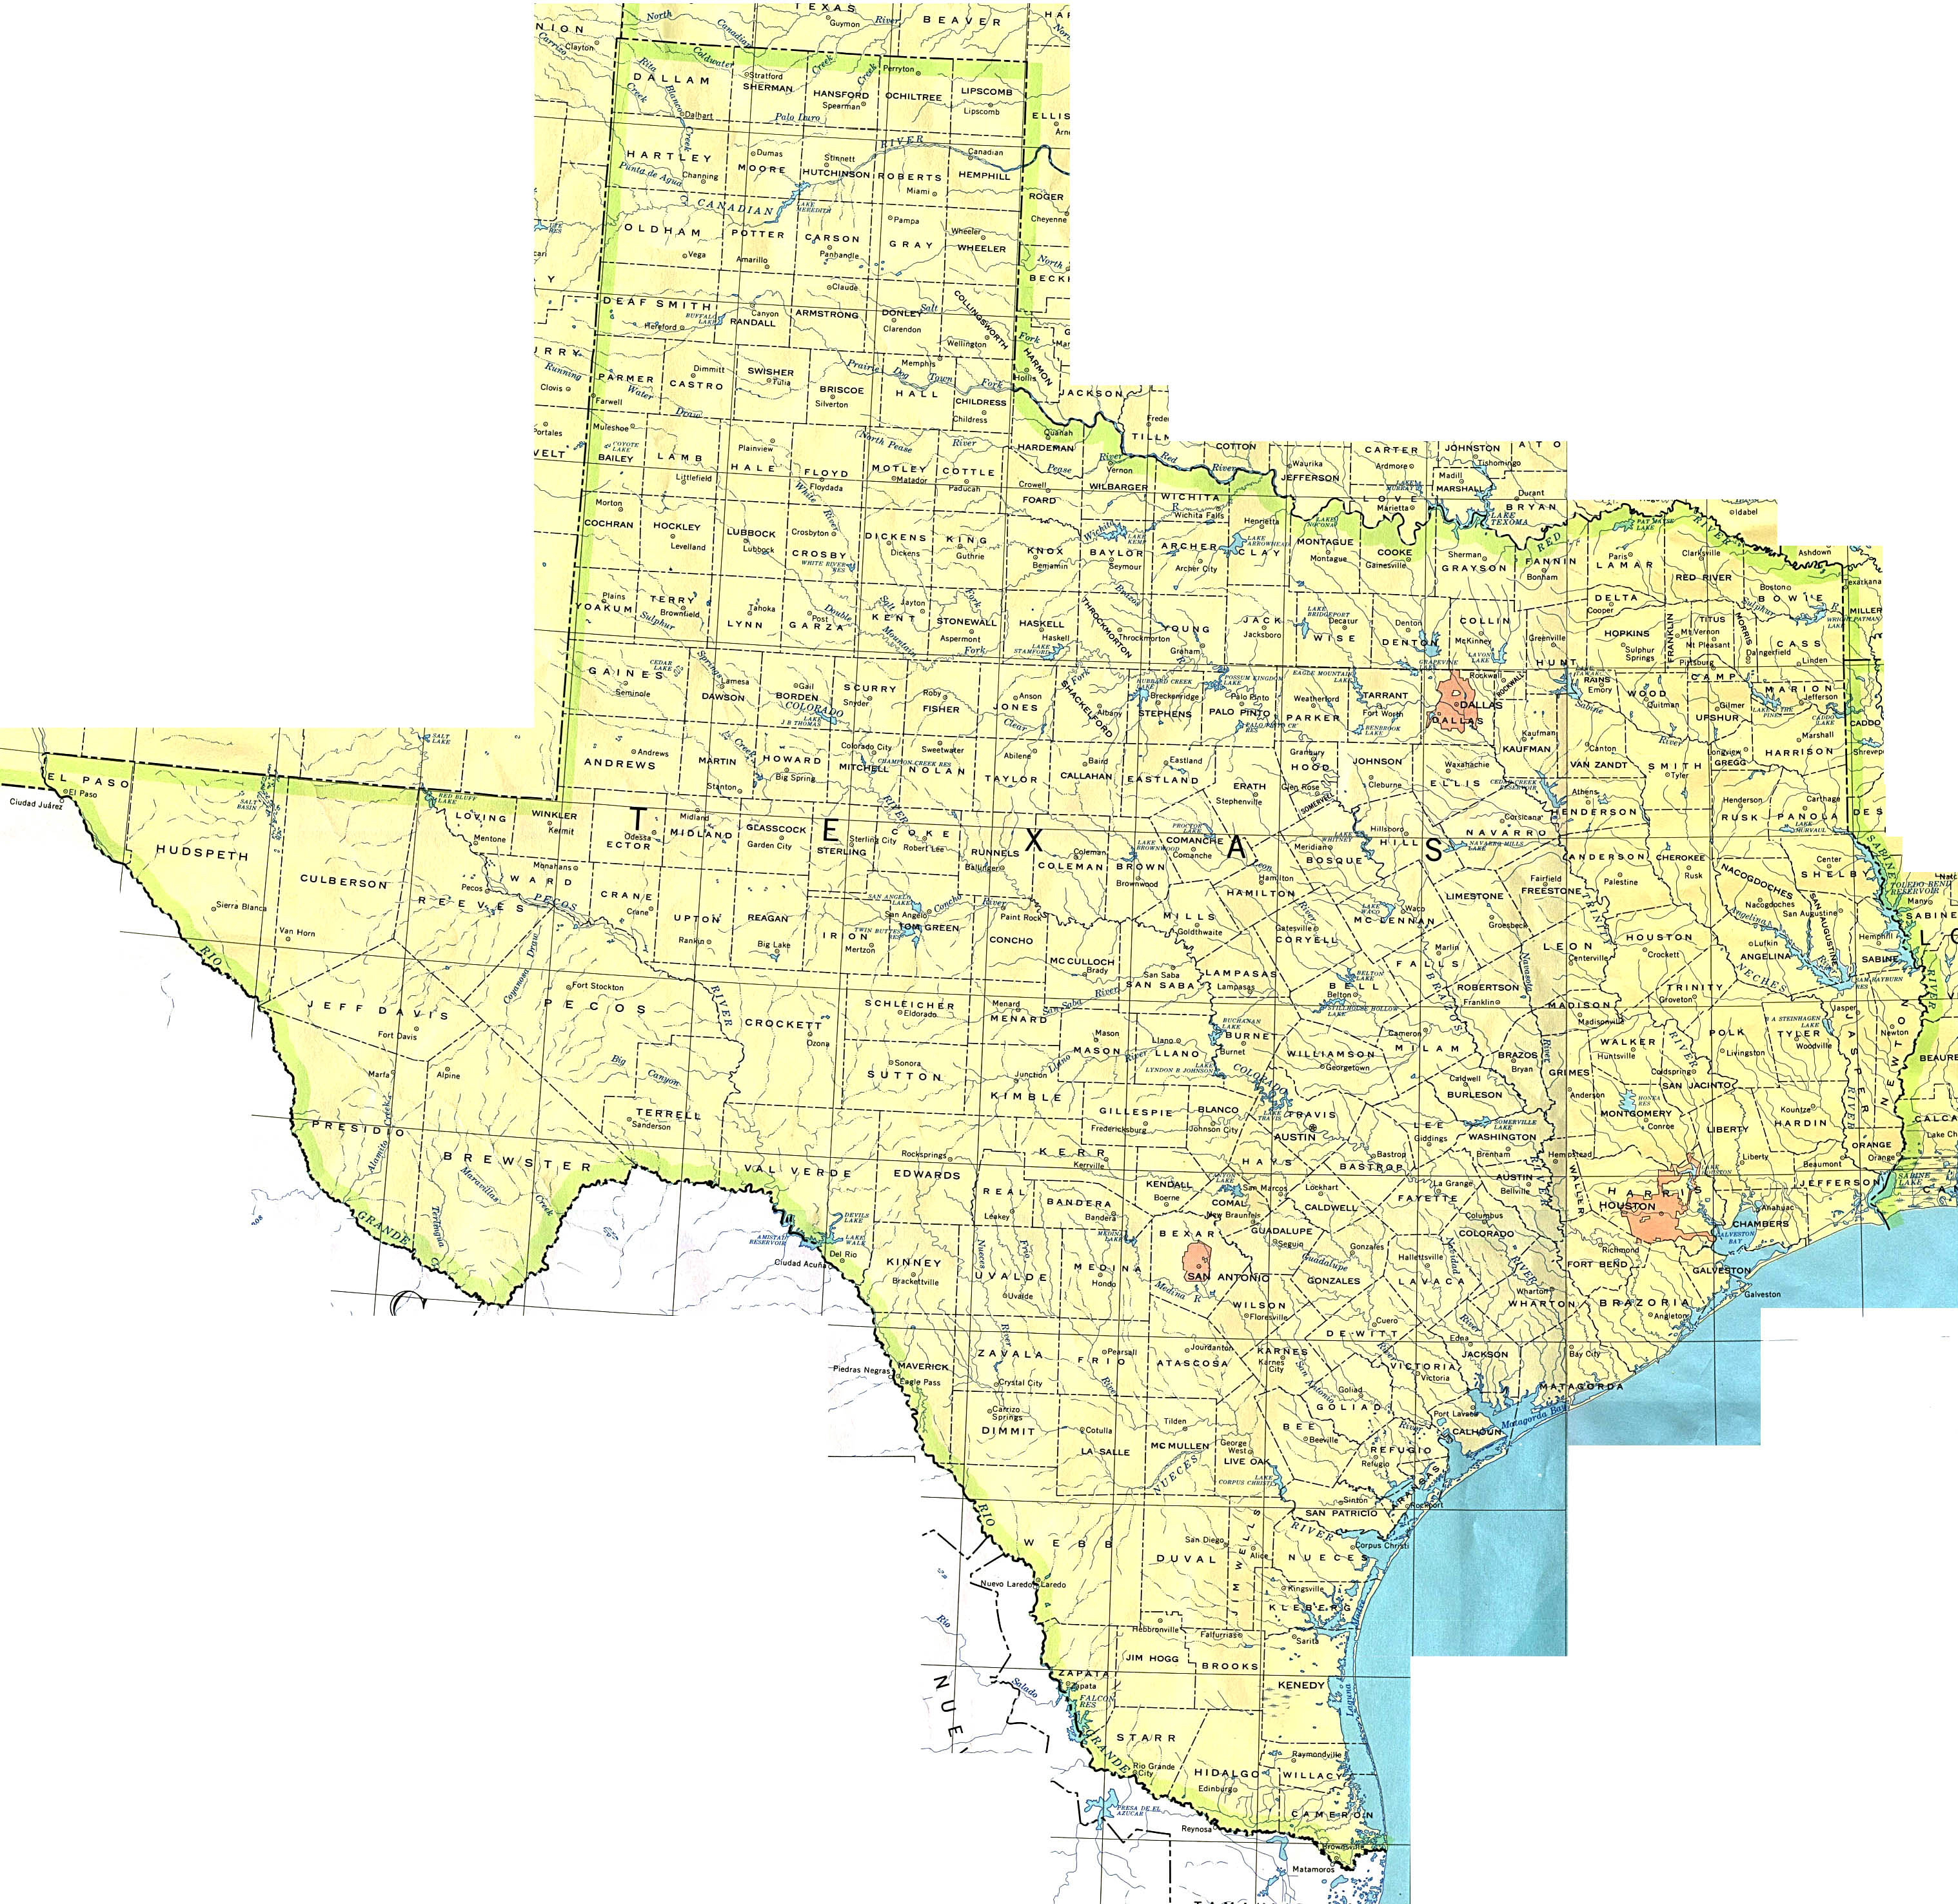 Texas Maps - Perry-Castañeda Map Collection - Ut Library Online - Texas Land Value Map